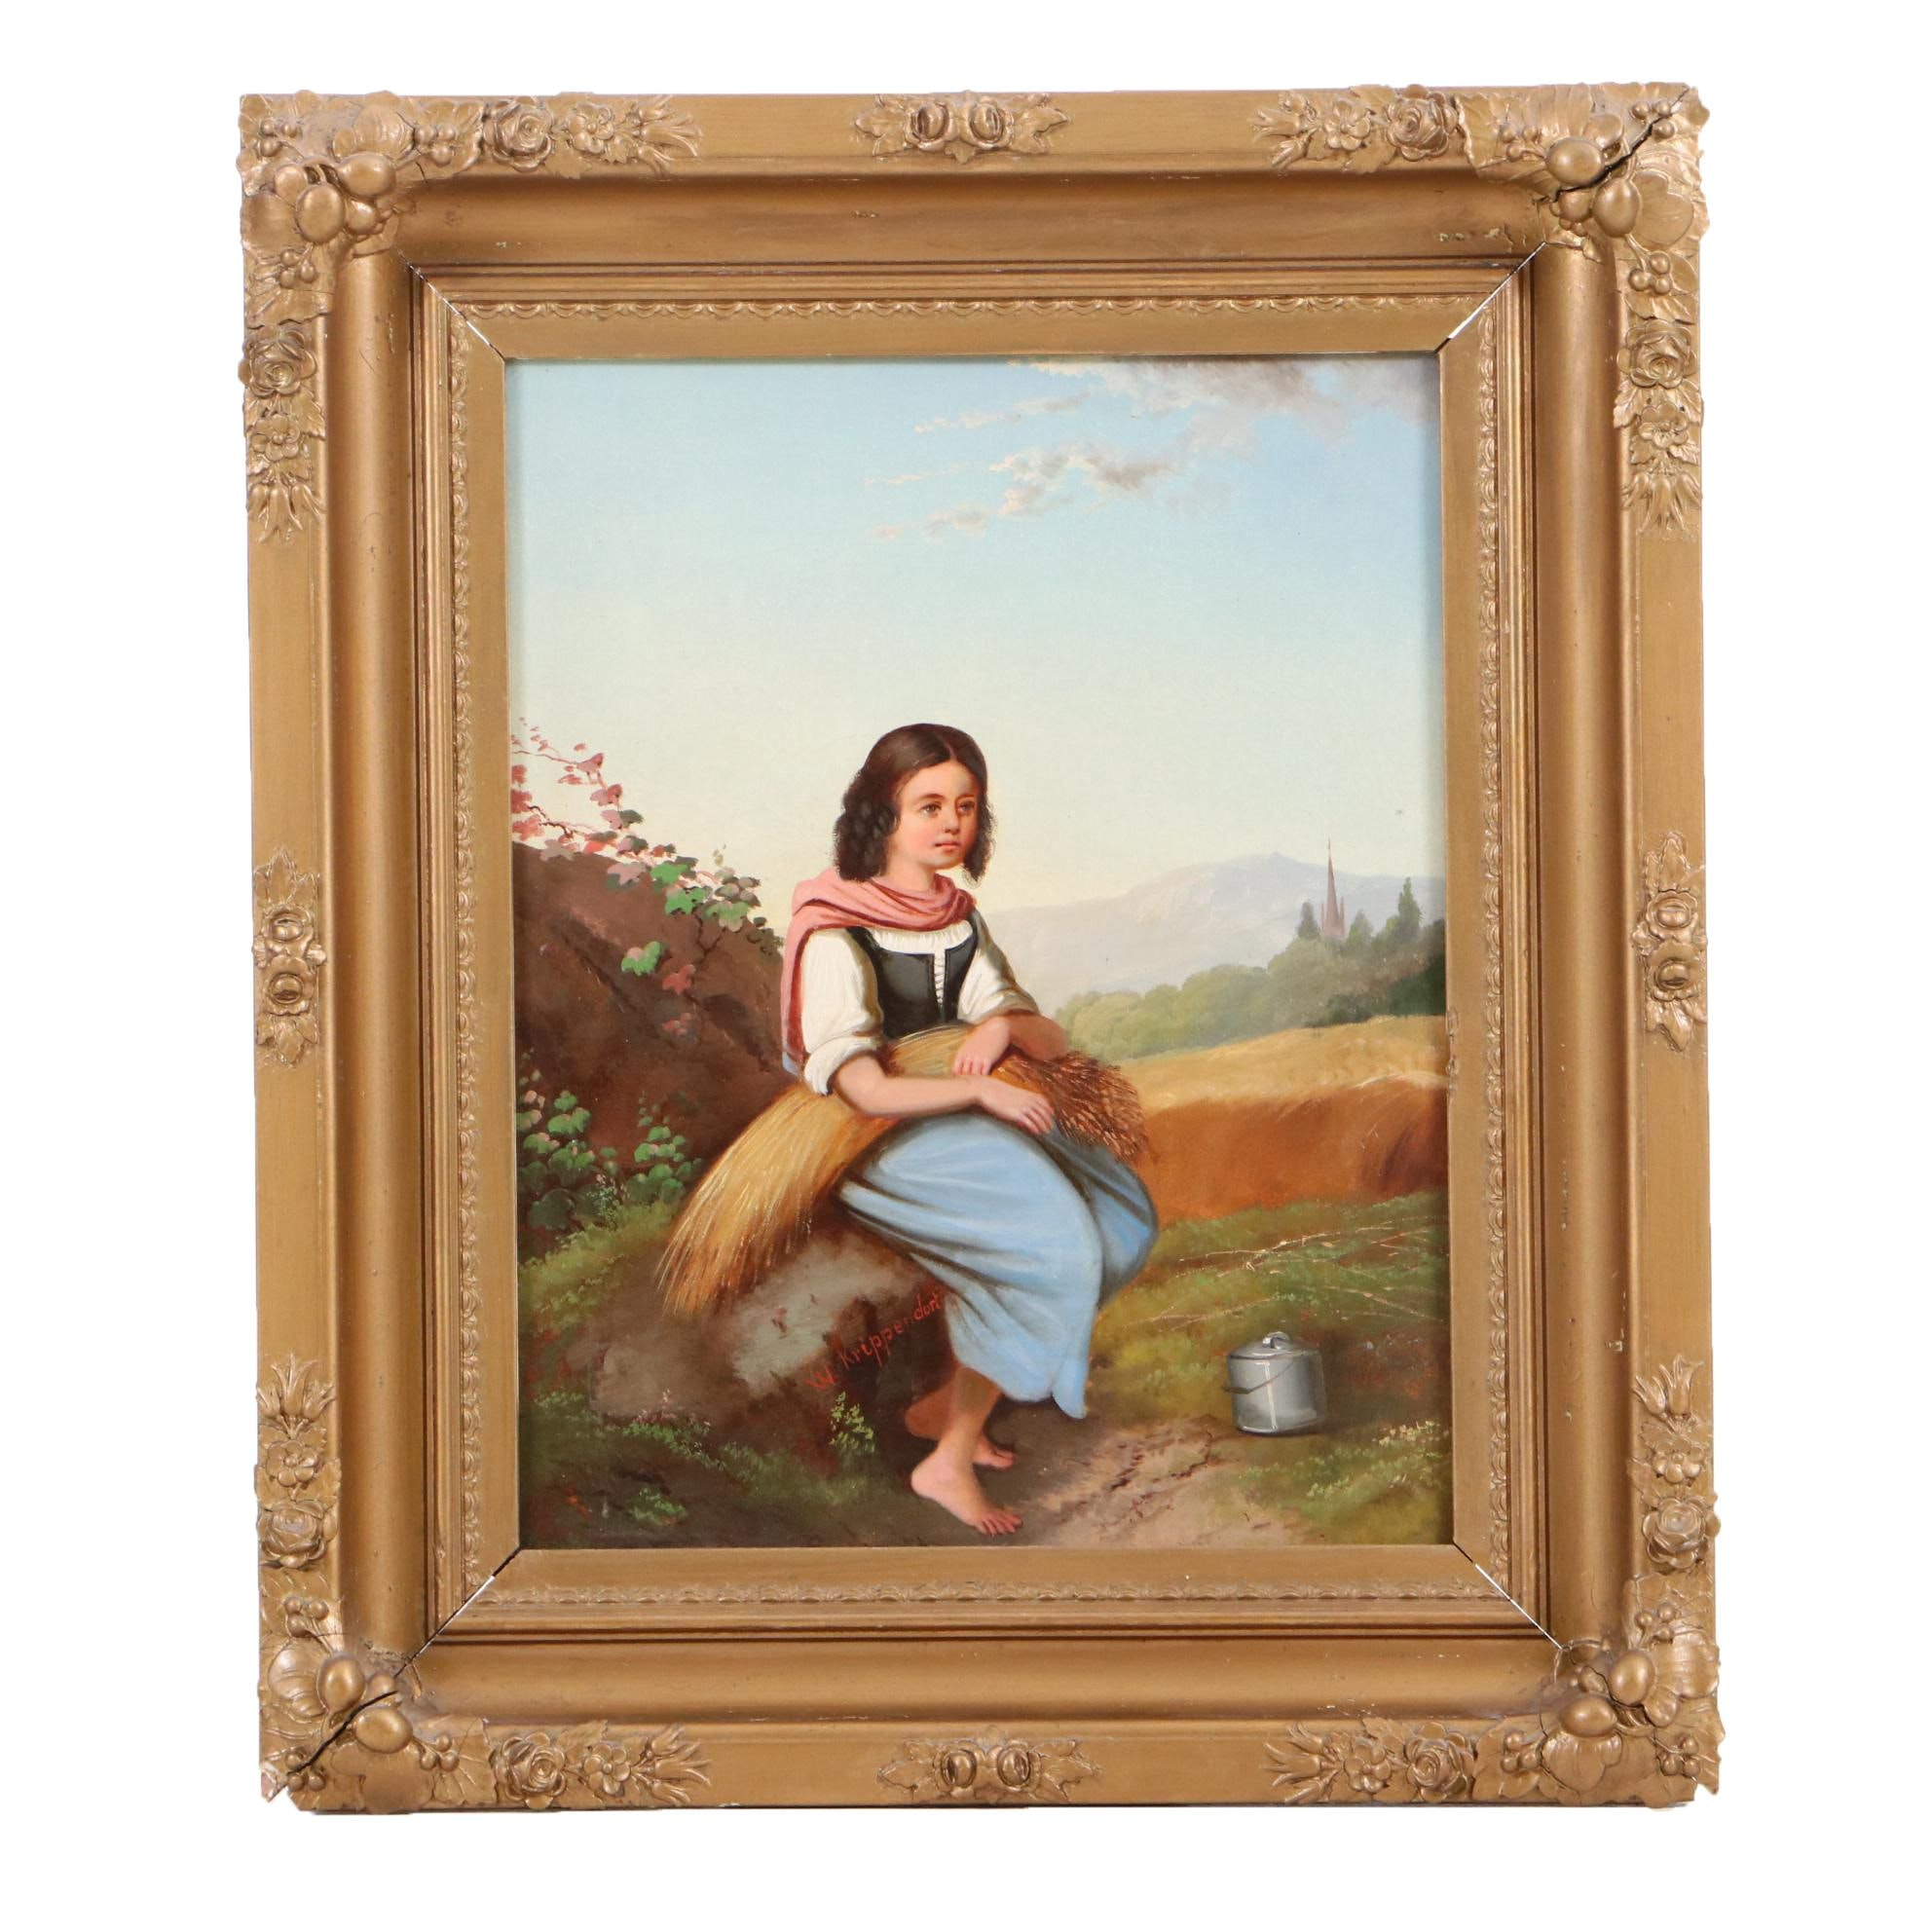 William H. Krippendorf Antique Portrait Oil Painting